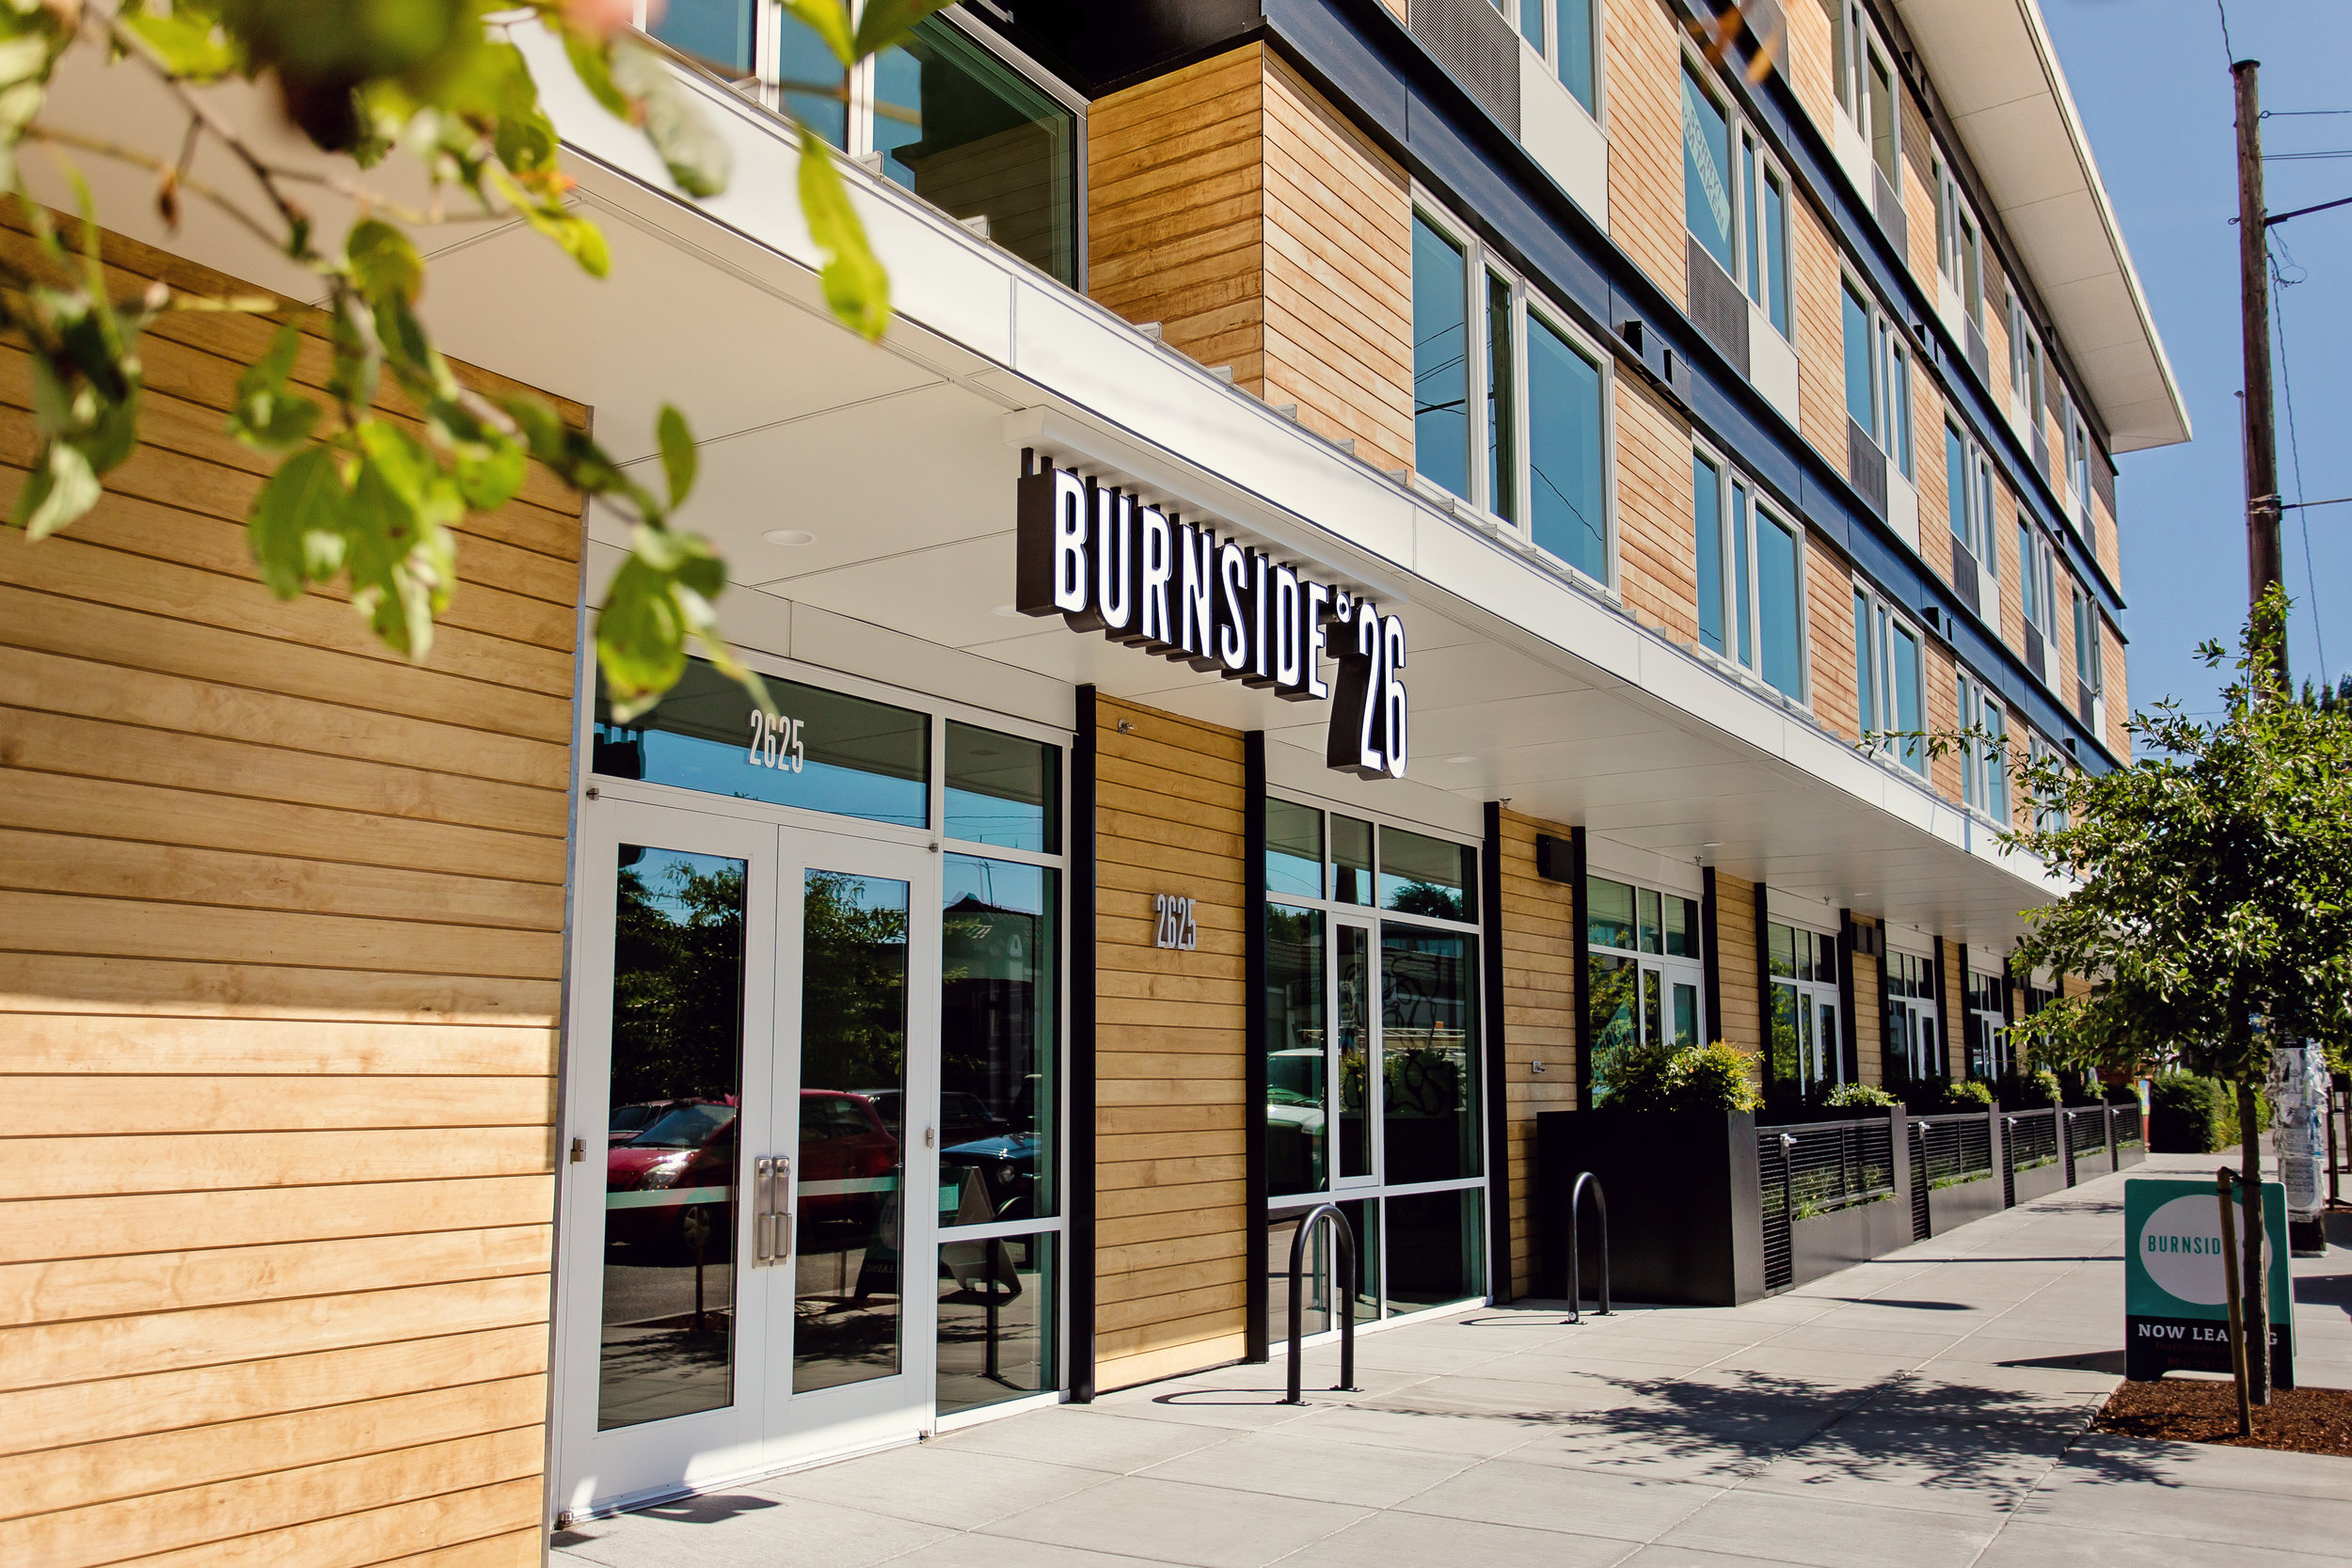 Name:    Burnside26     Location:   2625 E Burnside St    Type:  135-Unit Mixed-Use Multifamily   Completed:  2014